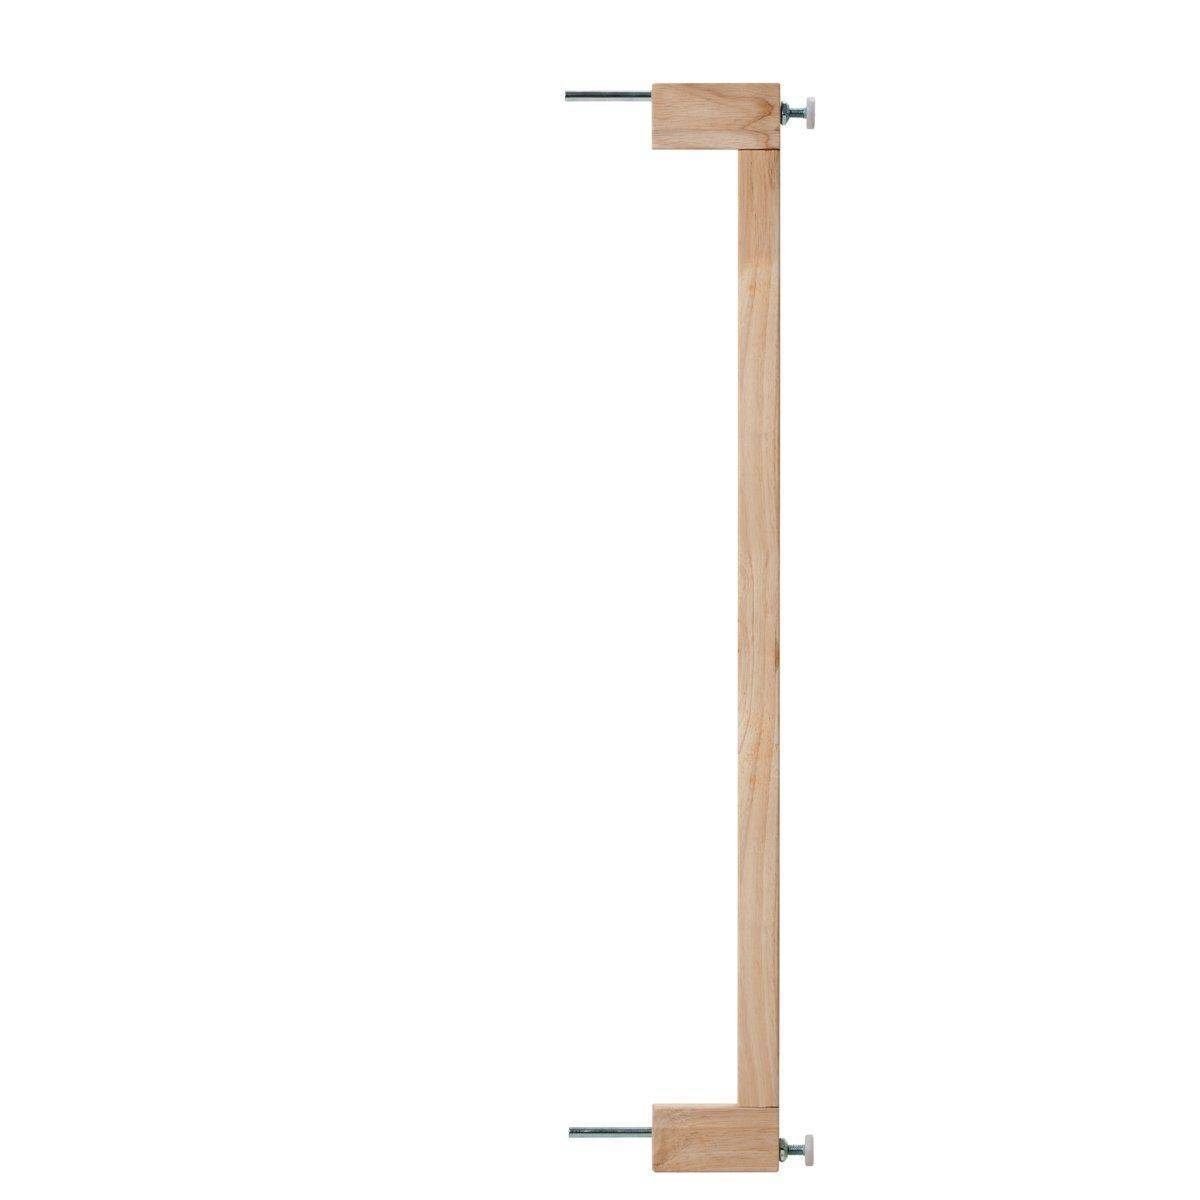 SAFETY FIRST Extension barrière sécurité EasyCloseWood - SAFETY FIRST